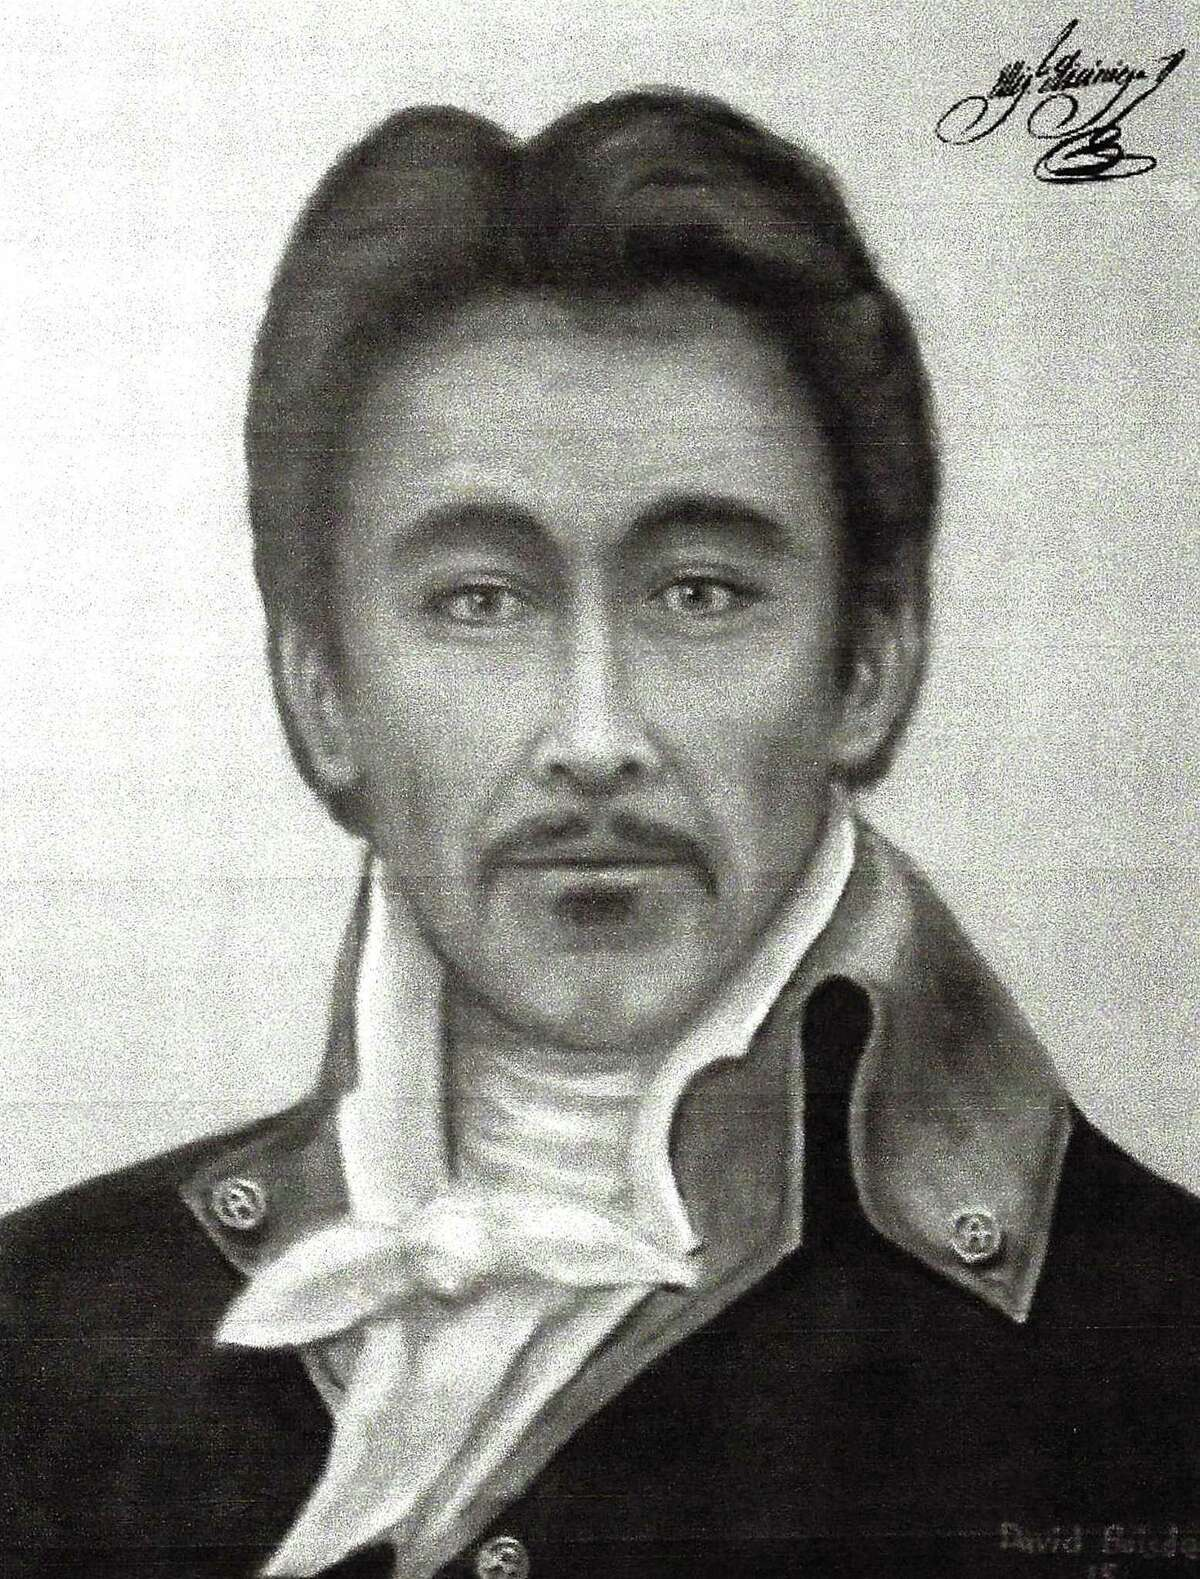 This portrait of Tejano patriot José Miguel de Arciniega was created by Houston artist David Baisden, who began with a digital composite based on existing images of the Tejano patriot's three sons, then produced airbrushed images and oil paintings. This is the image hanging at the state Capitol, in the Legislative Reference Library.